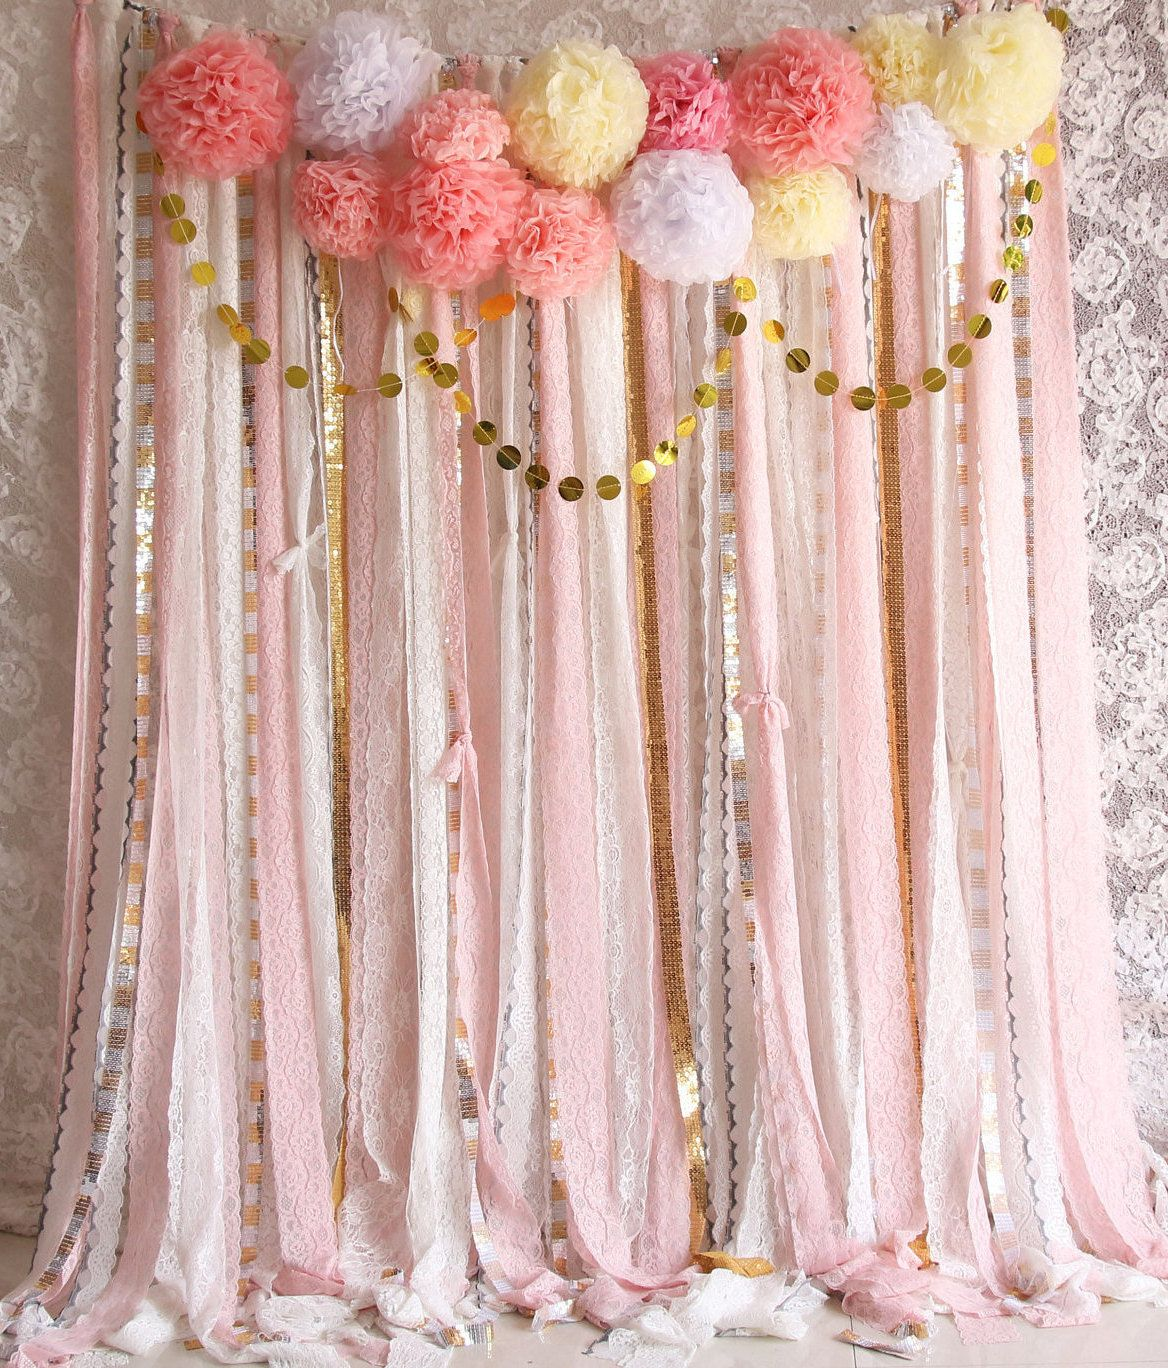 Best Pink White Lace Pom Poms Flowers Sparkle Fabric Backdrop This Month